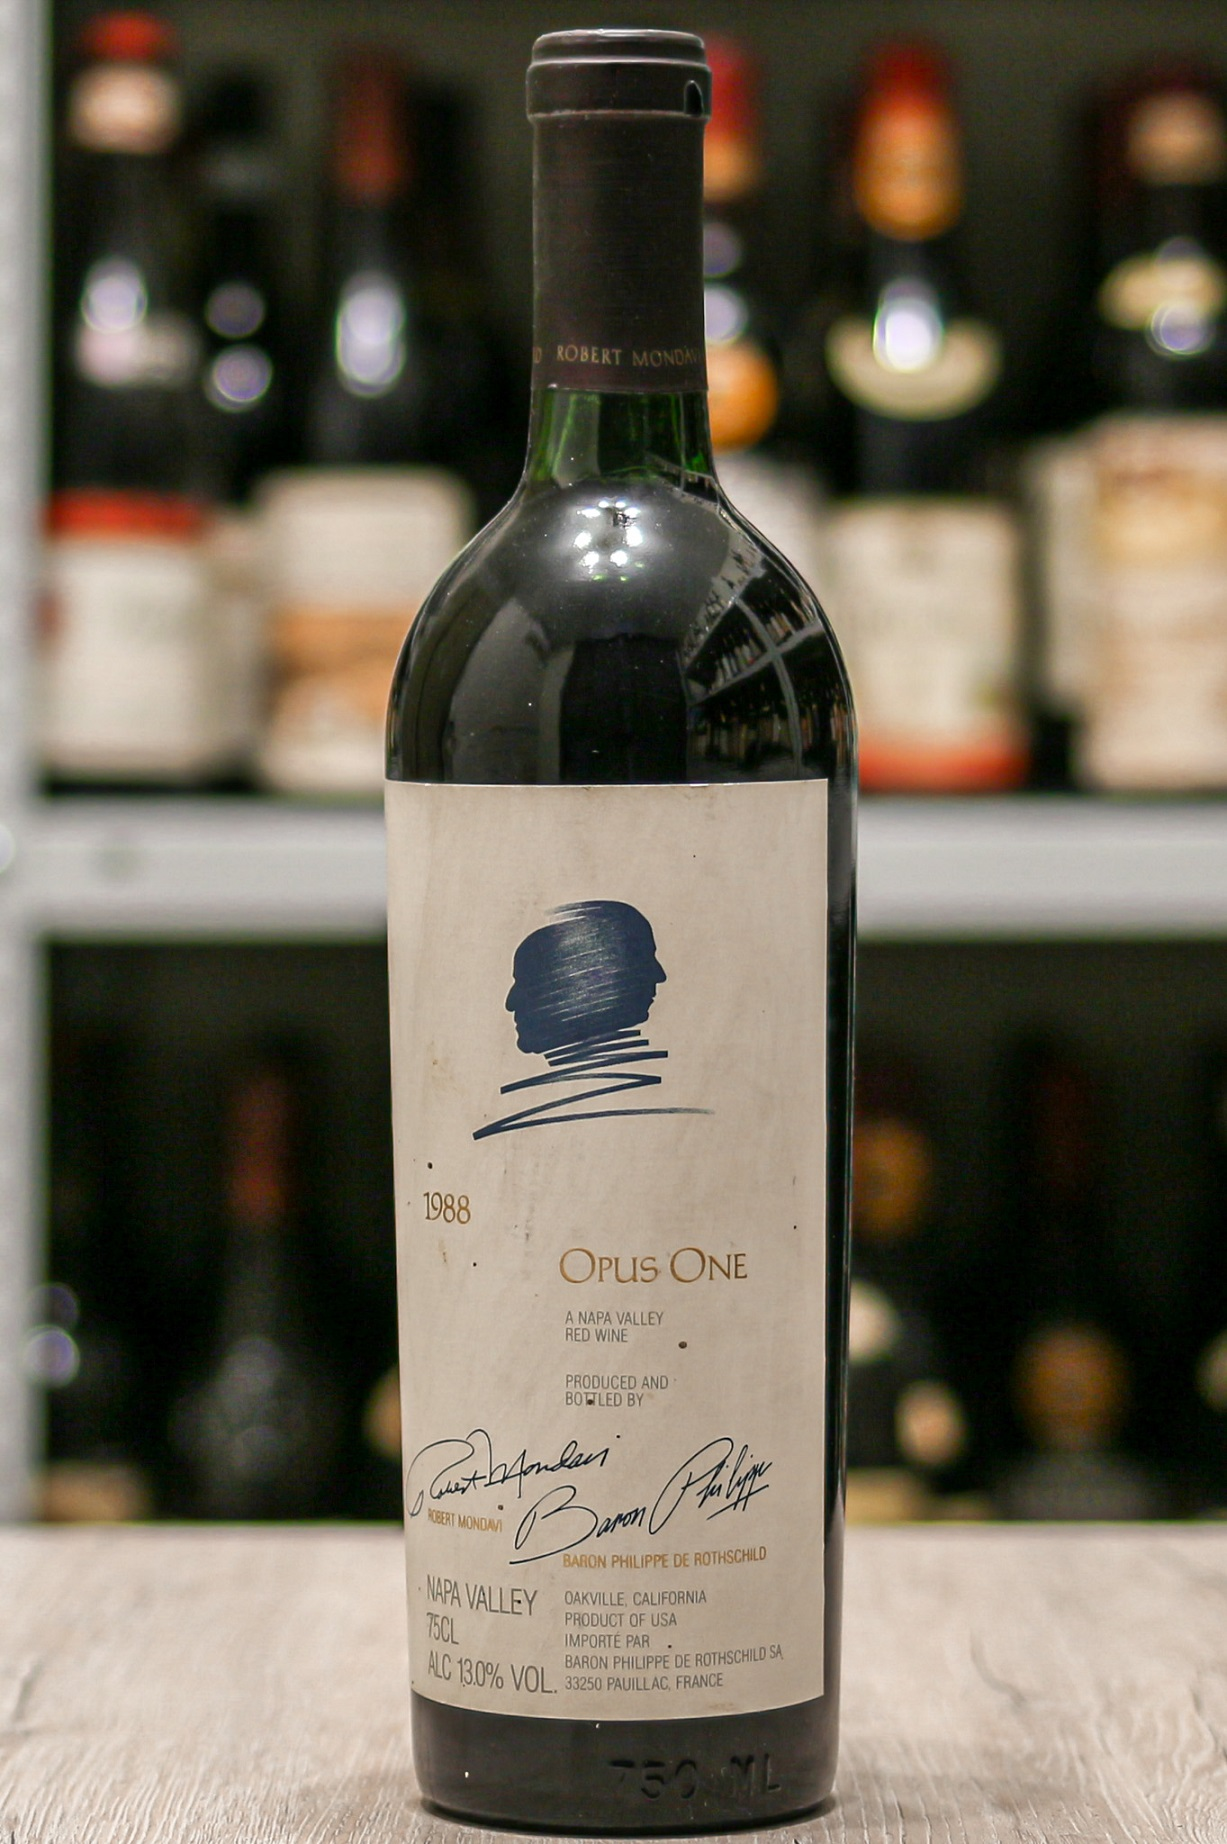 Купить вино Opus One a Nappa Valley 1988 года урожая